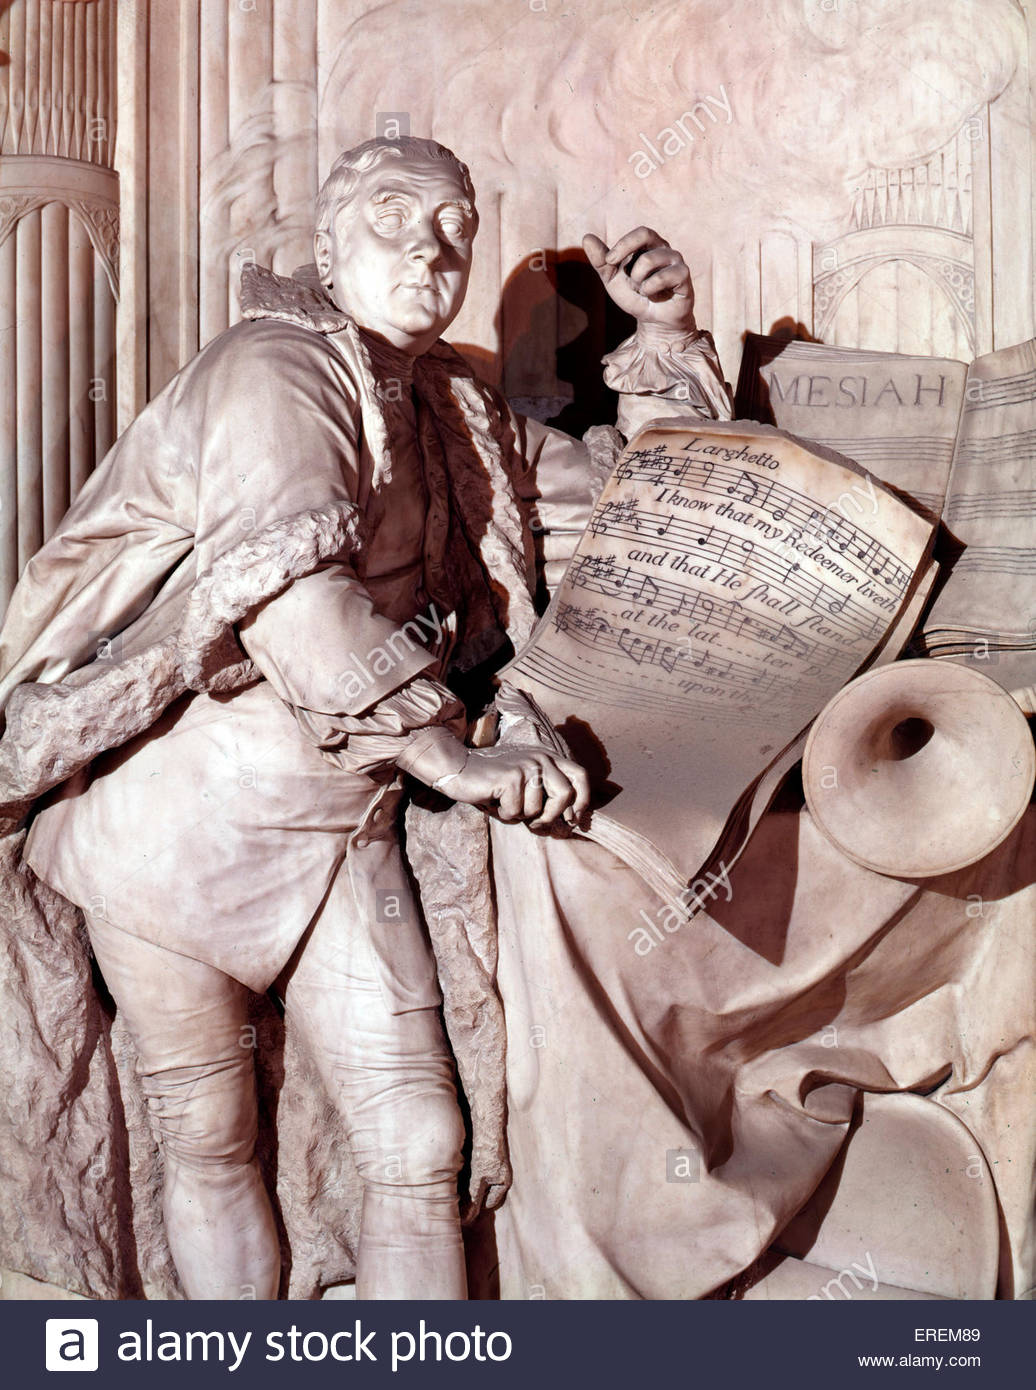 George Frederic Handel monument, , unveiled in 1762. Westminster Abbey, London UK. By French sculptor Louis Francois - Stock Image